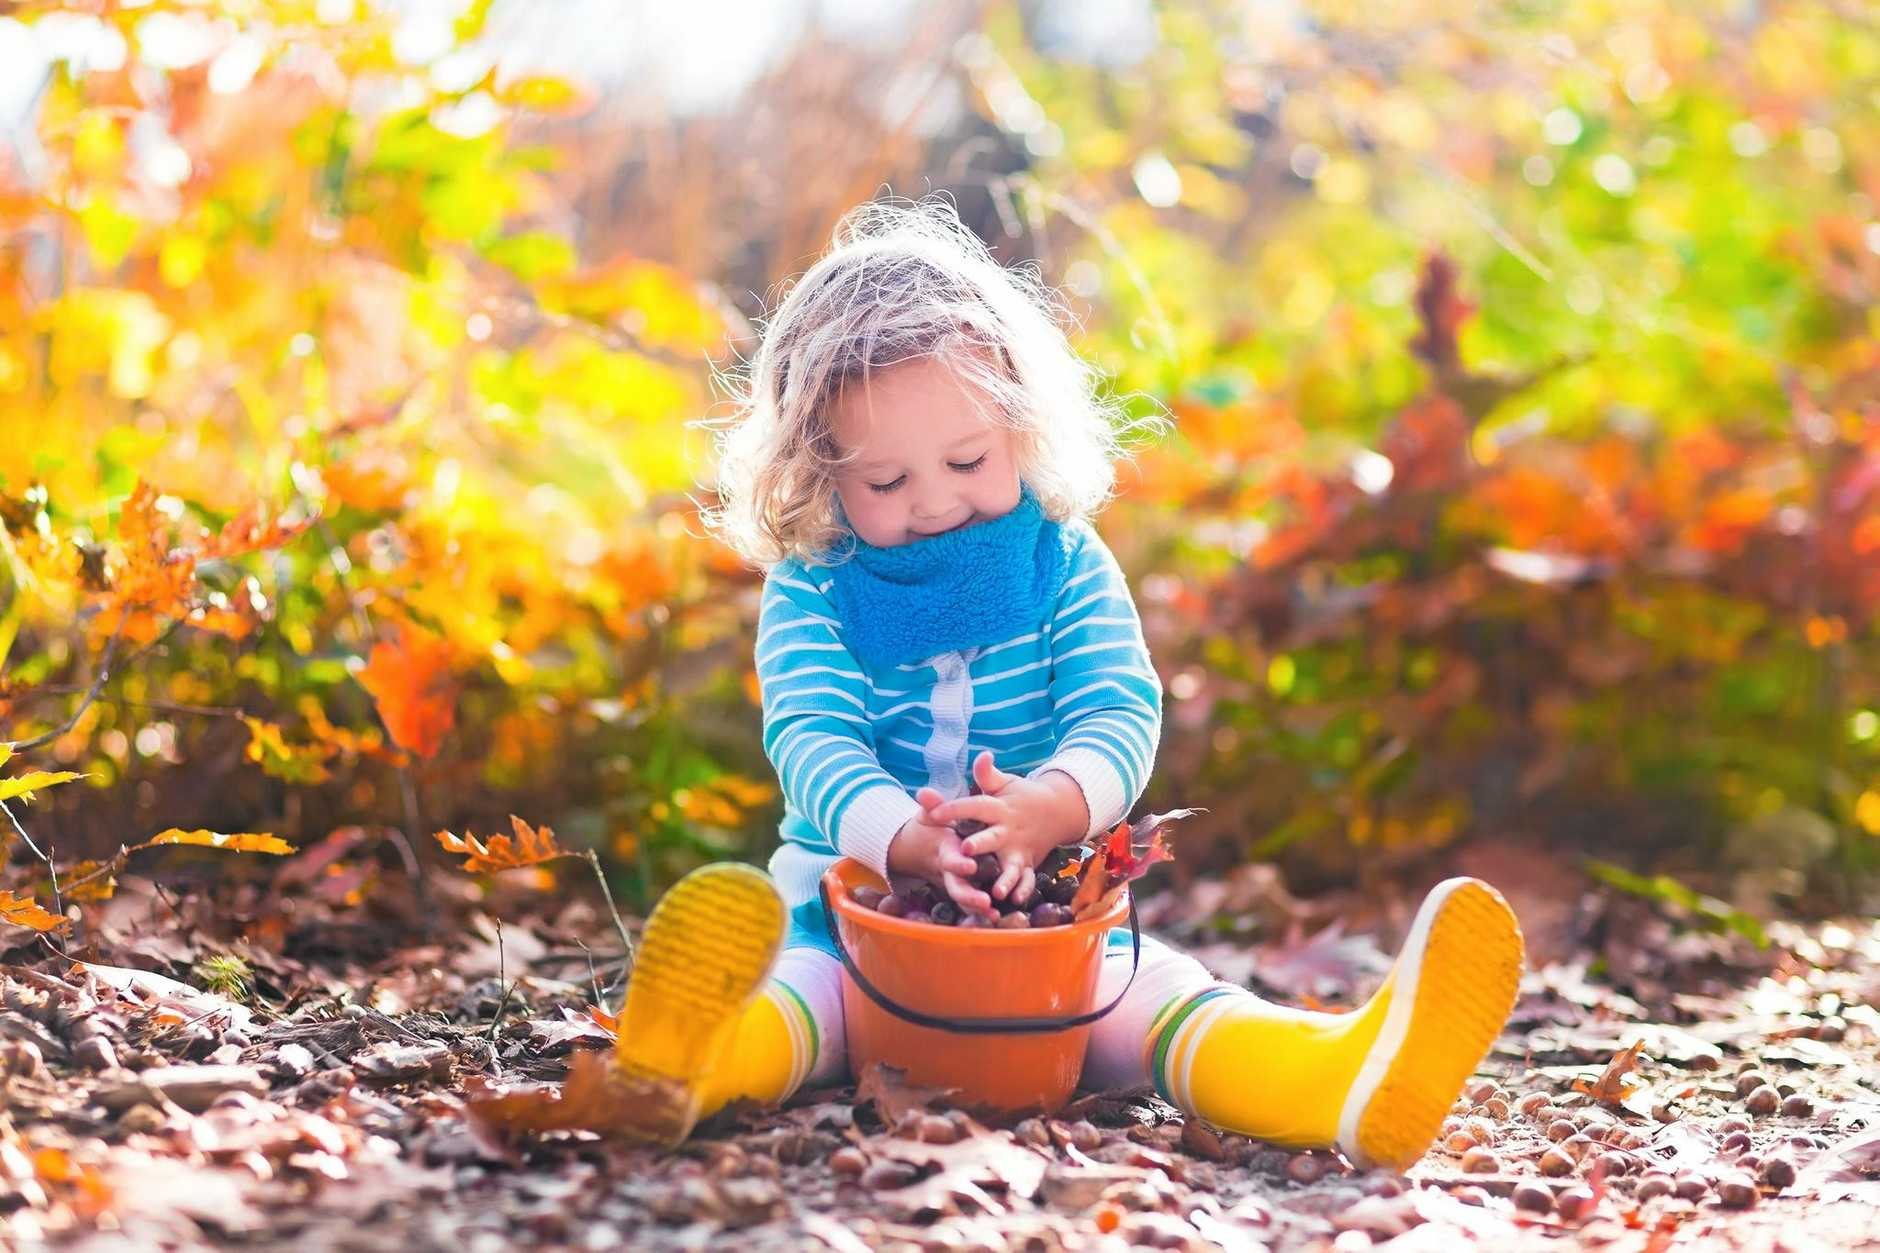 Girl holding acorn and colorful leaf in autumn park. Child picking acorns in a bucket in fall forest with golden oak and maple leaves. Children play outdoors. Kids playing and hiking in the woods. Thinkstock image